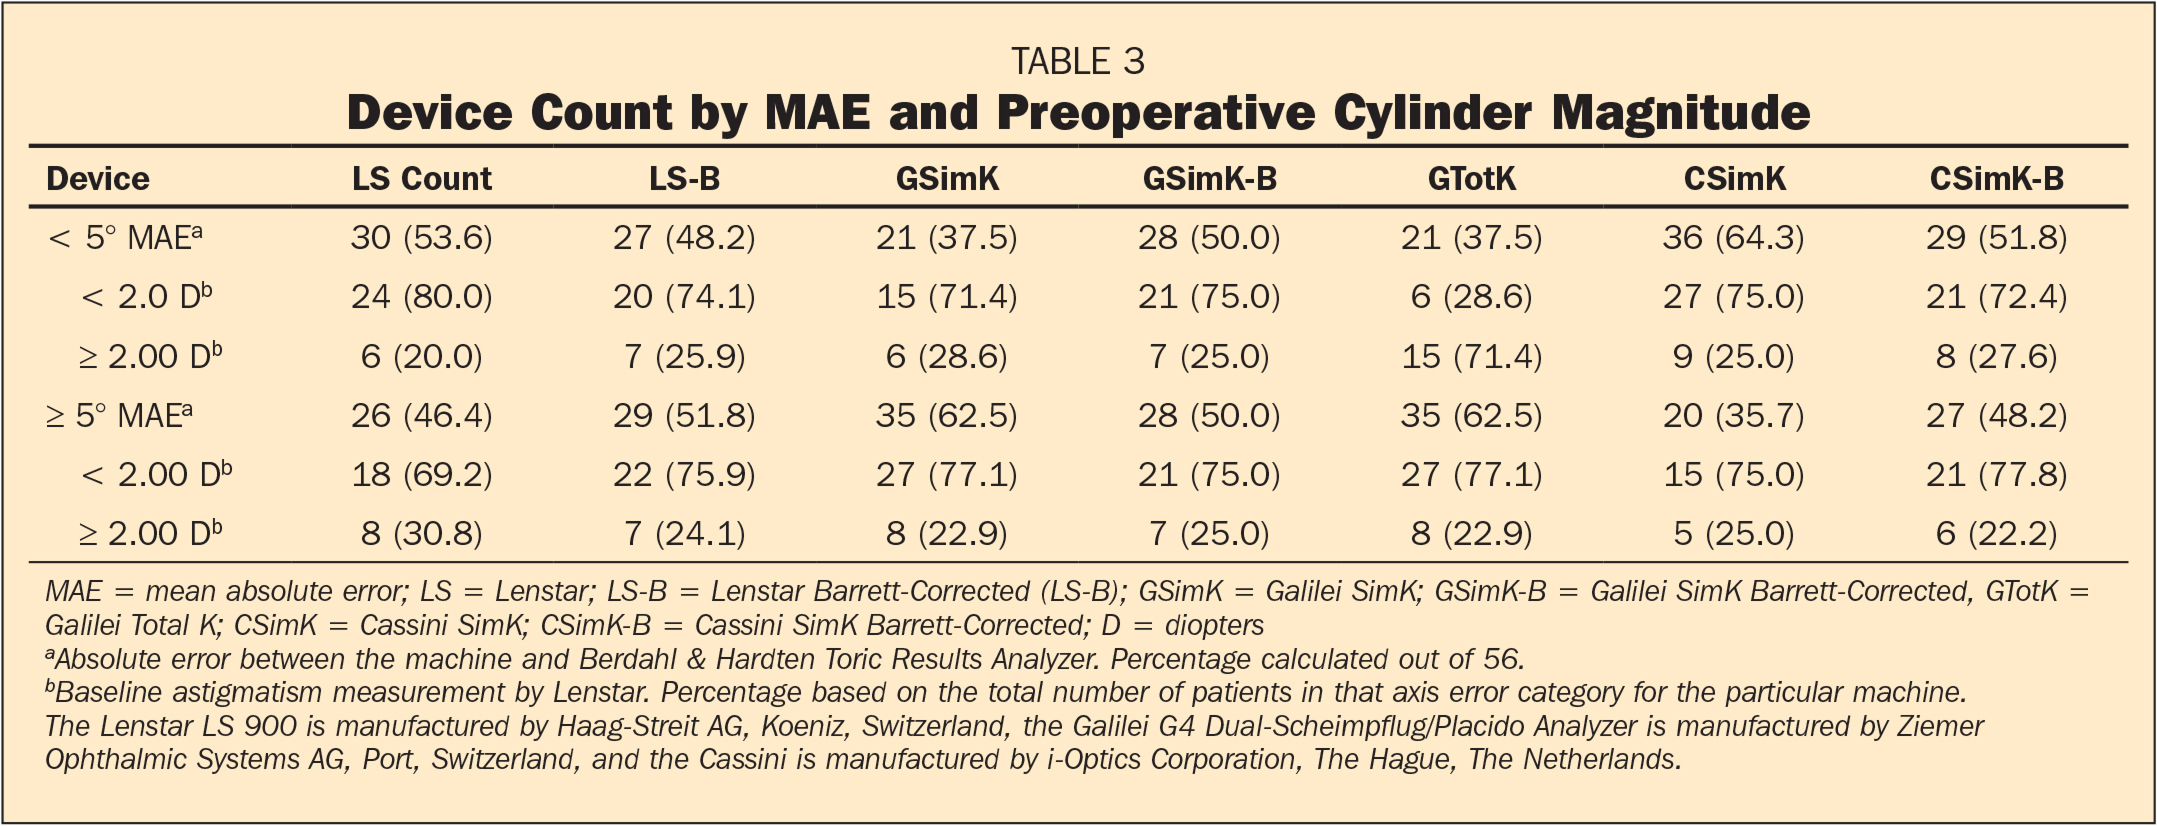 Device Count by MAE and Preoperative Cylinder Magnitude